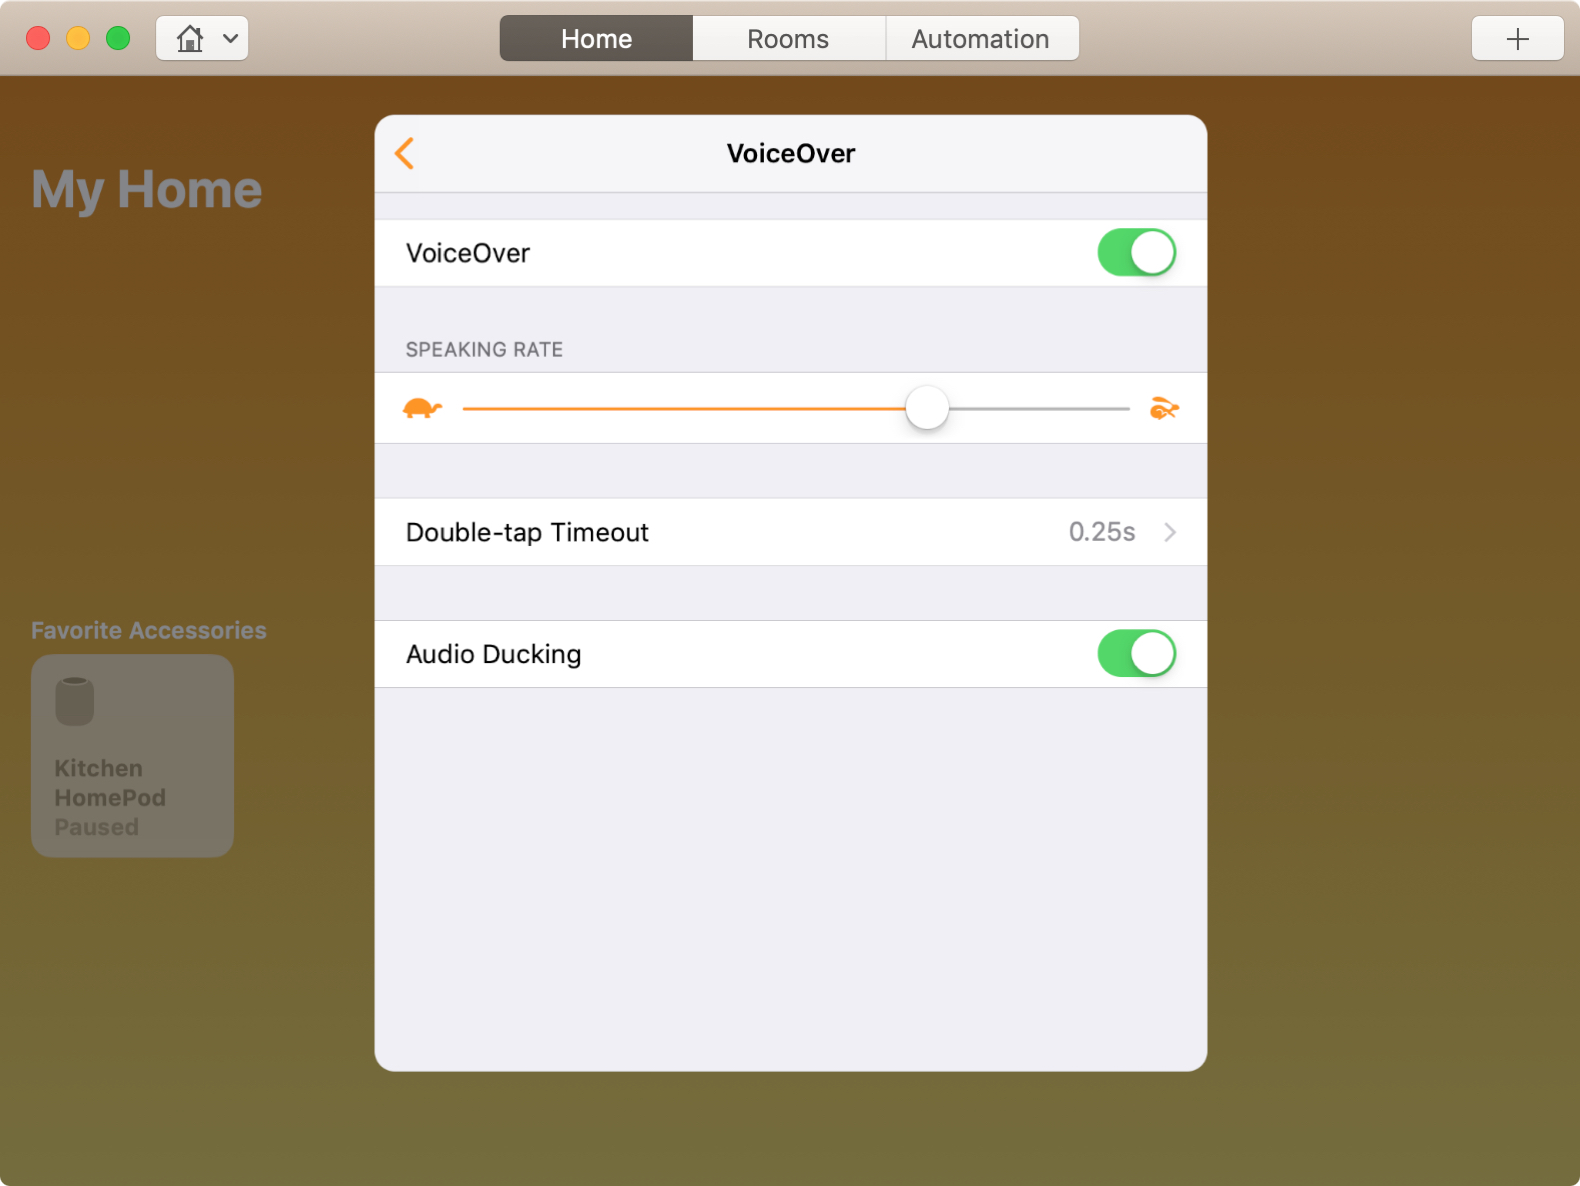 Enable VoiceOver for HomePod on Mac